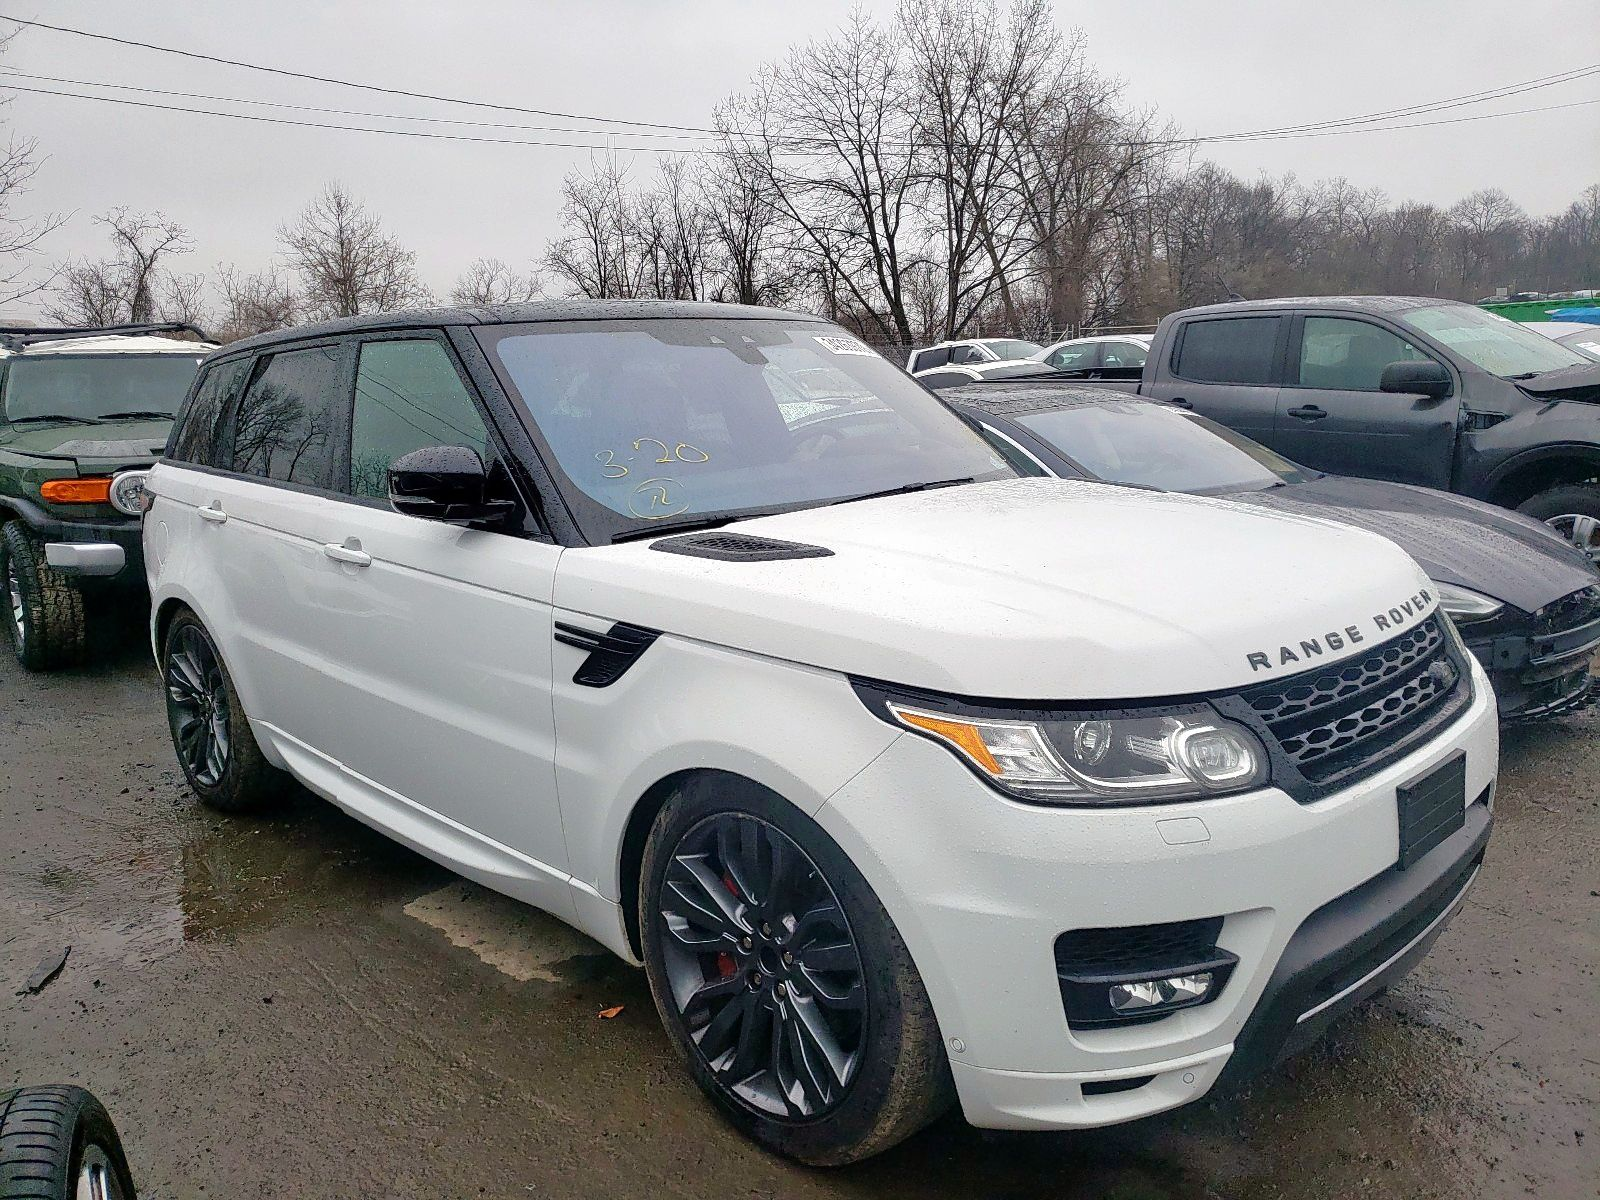 2017 LAND ROVER RANGE ROVER SPORT HSE DYNAMIC 39900 in